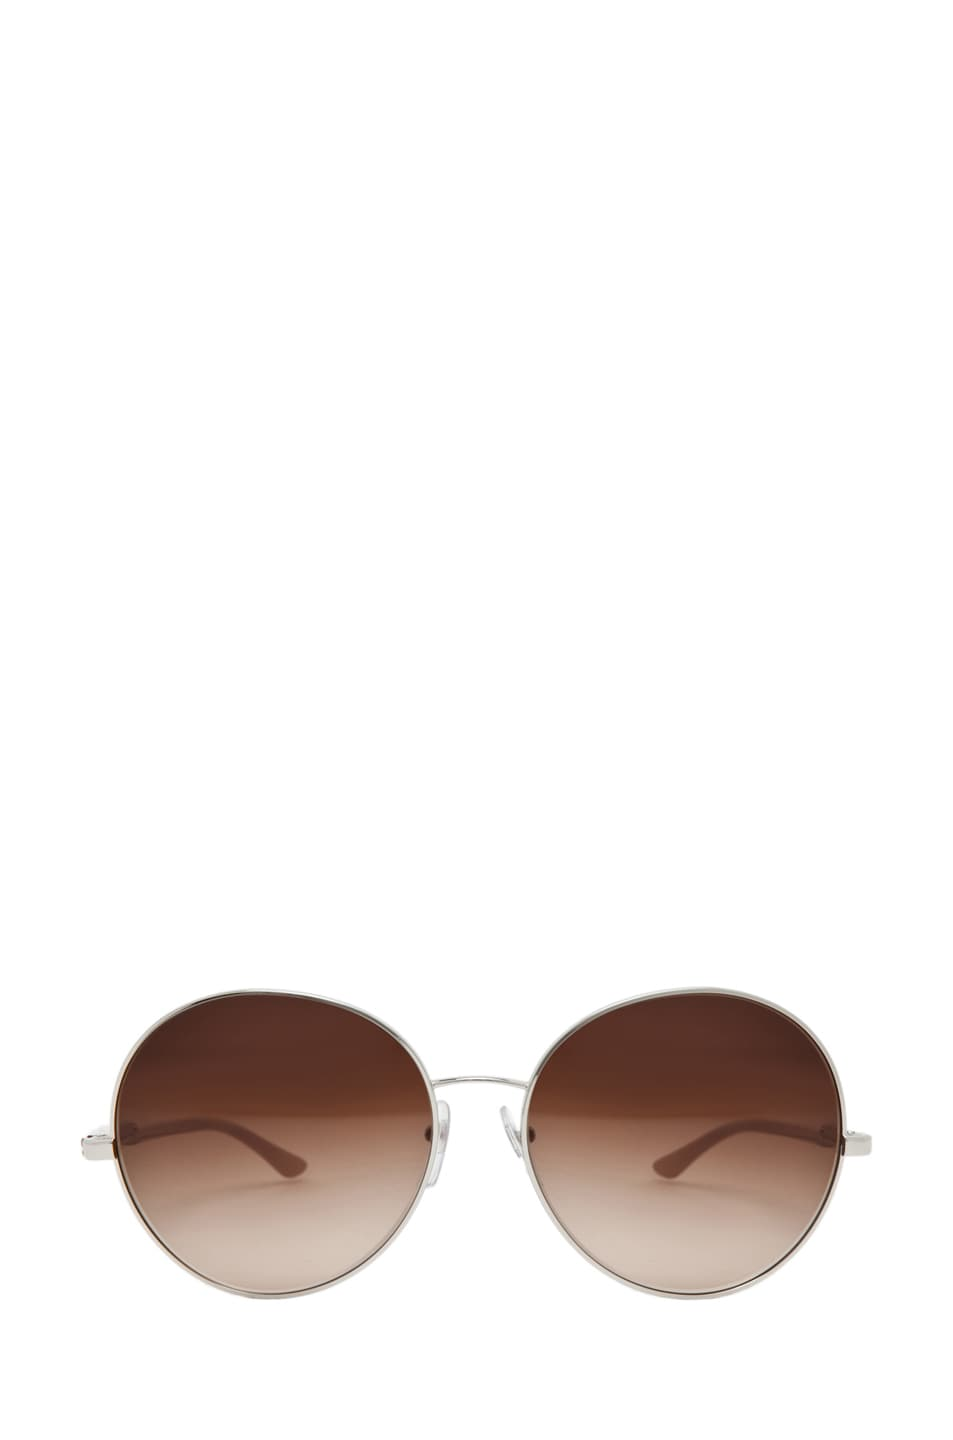 Image 1 of Stella McCartney Sunglasses in Nude